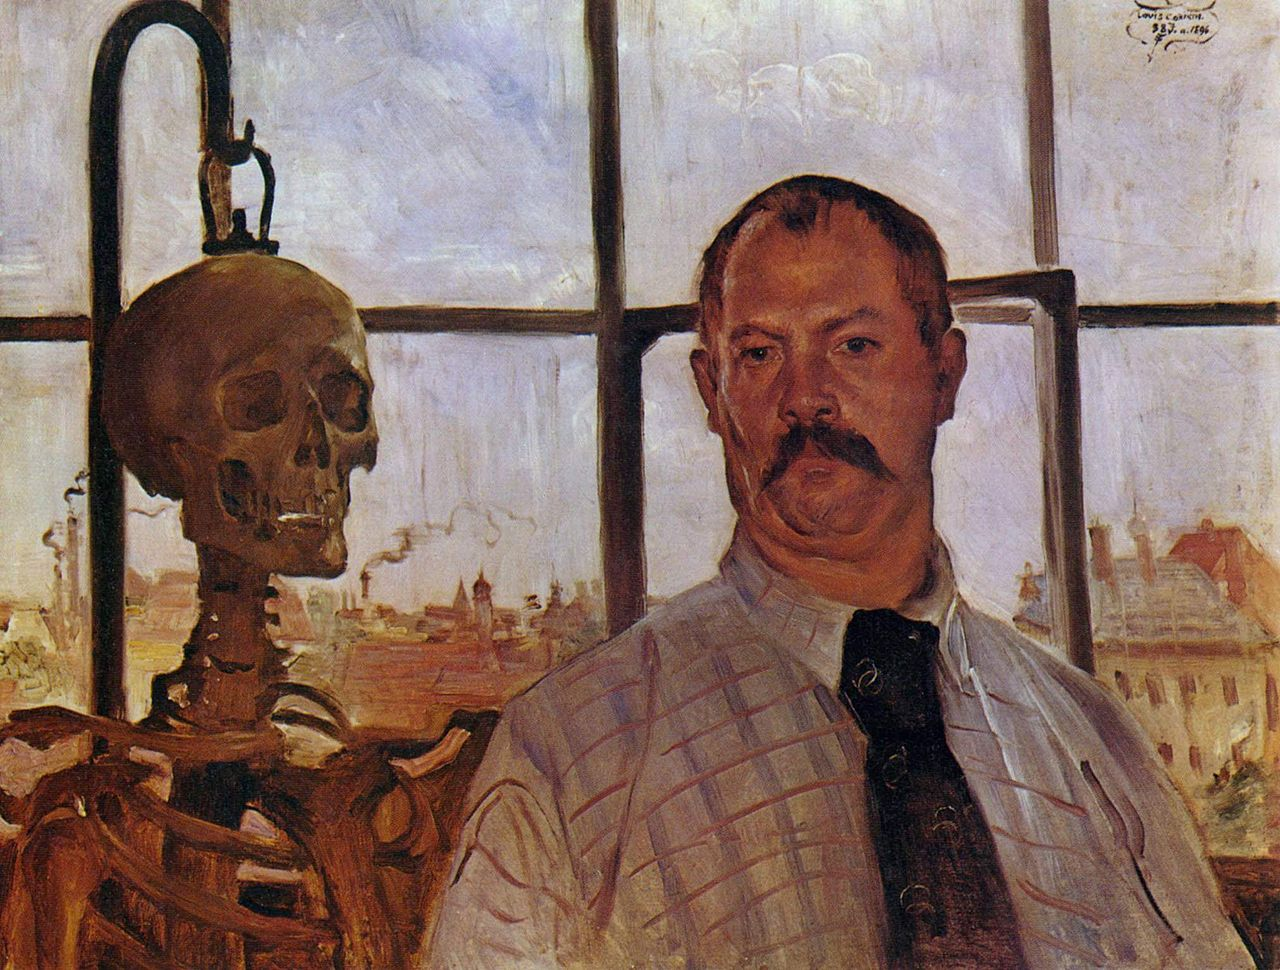 Lovis Corinth, Self Portrait with Skeleton (1896)